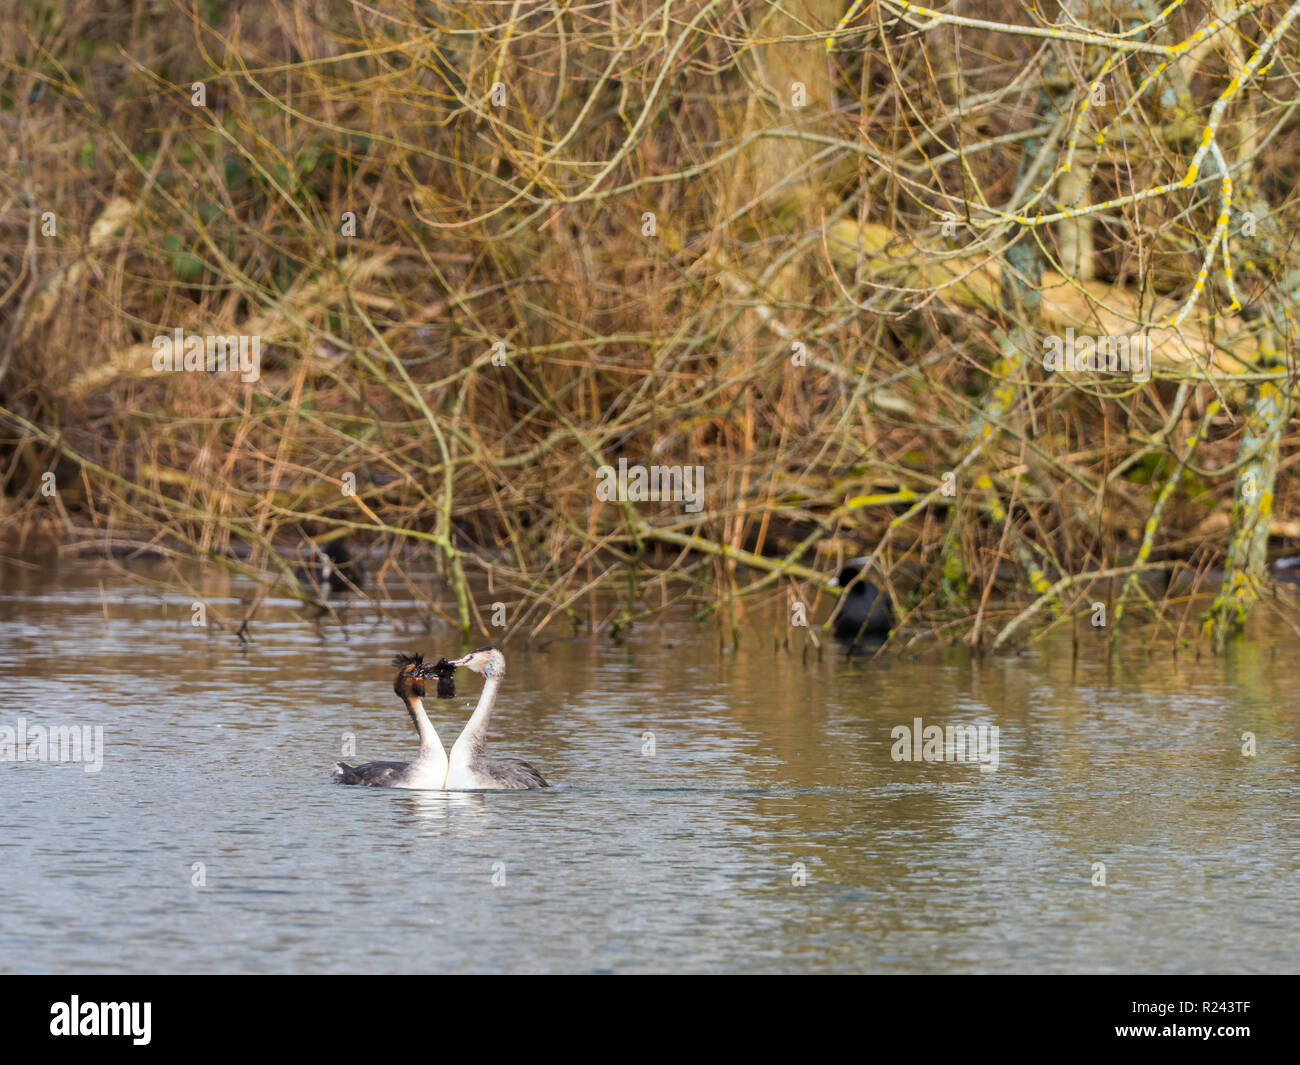 Great Crested Grebe swimming on lake - Stock Image